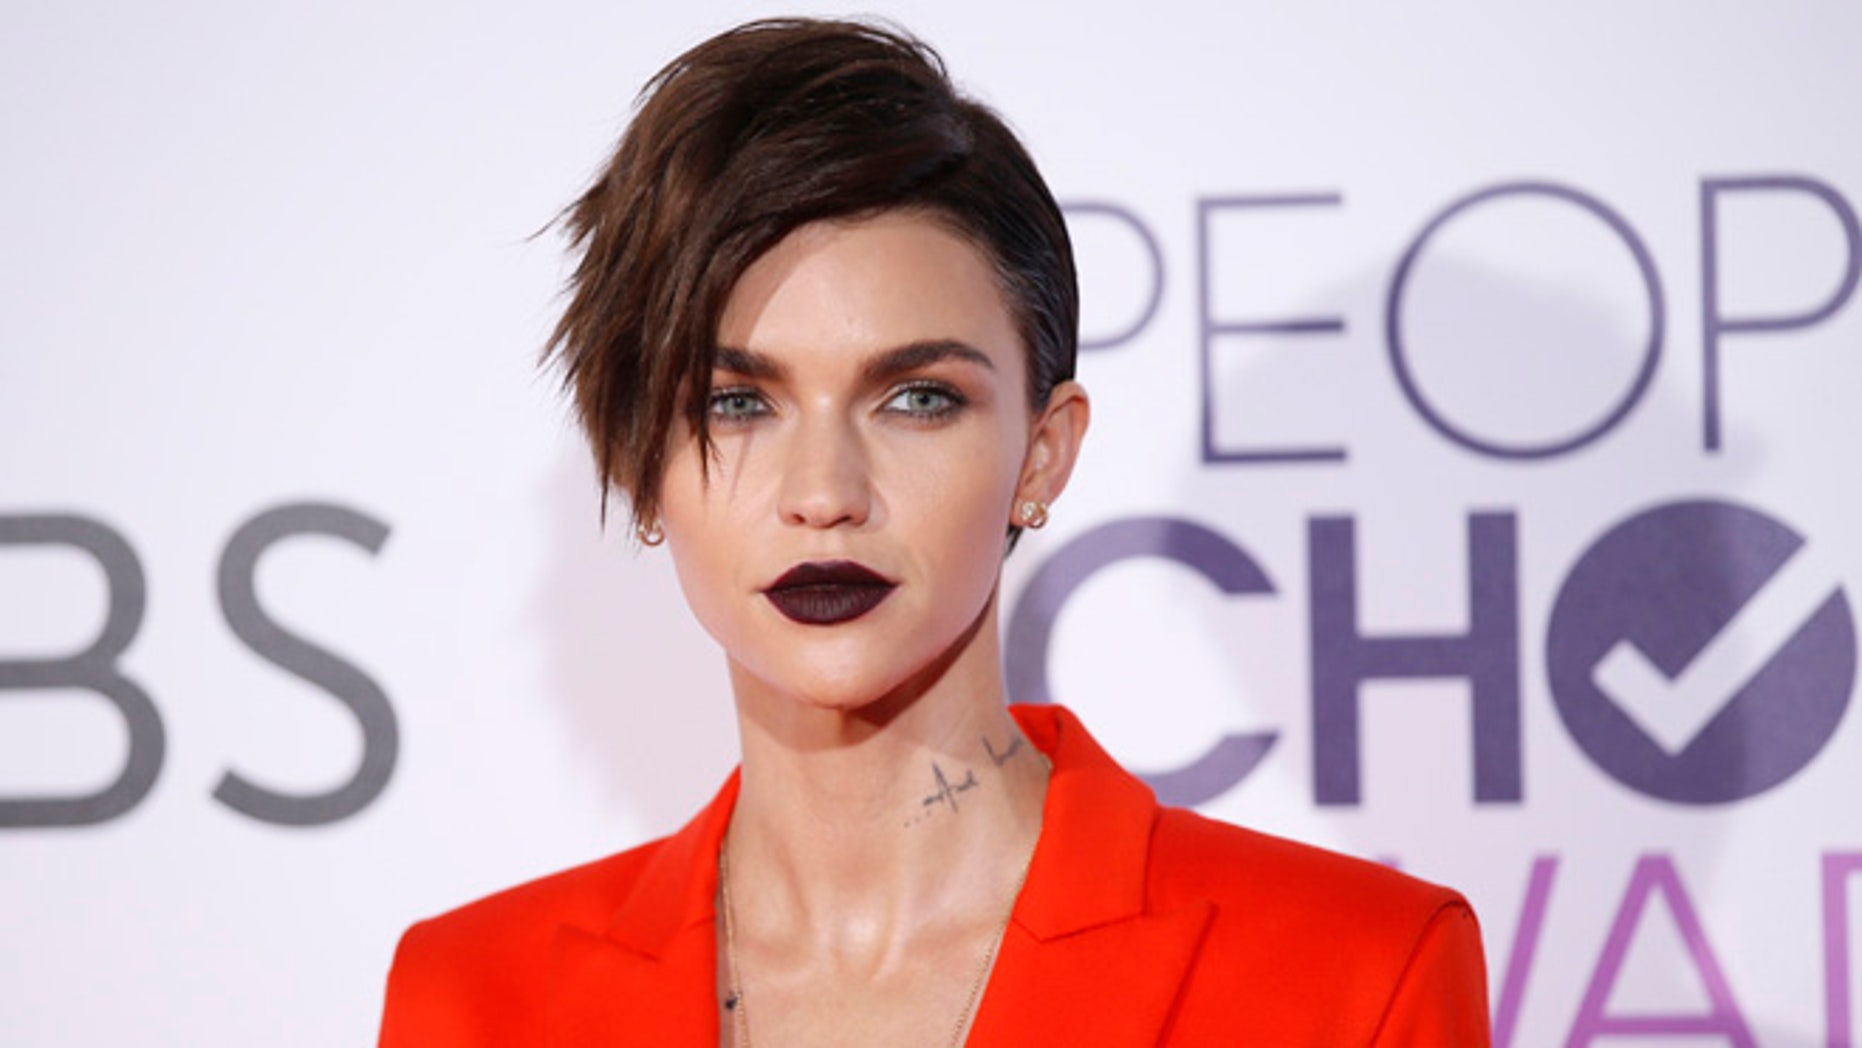 Ruby Rose is named the most dangerous celebrity by Cybersecurity firm McAfee on Tuesday.